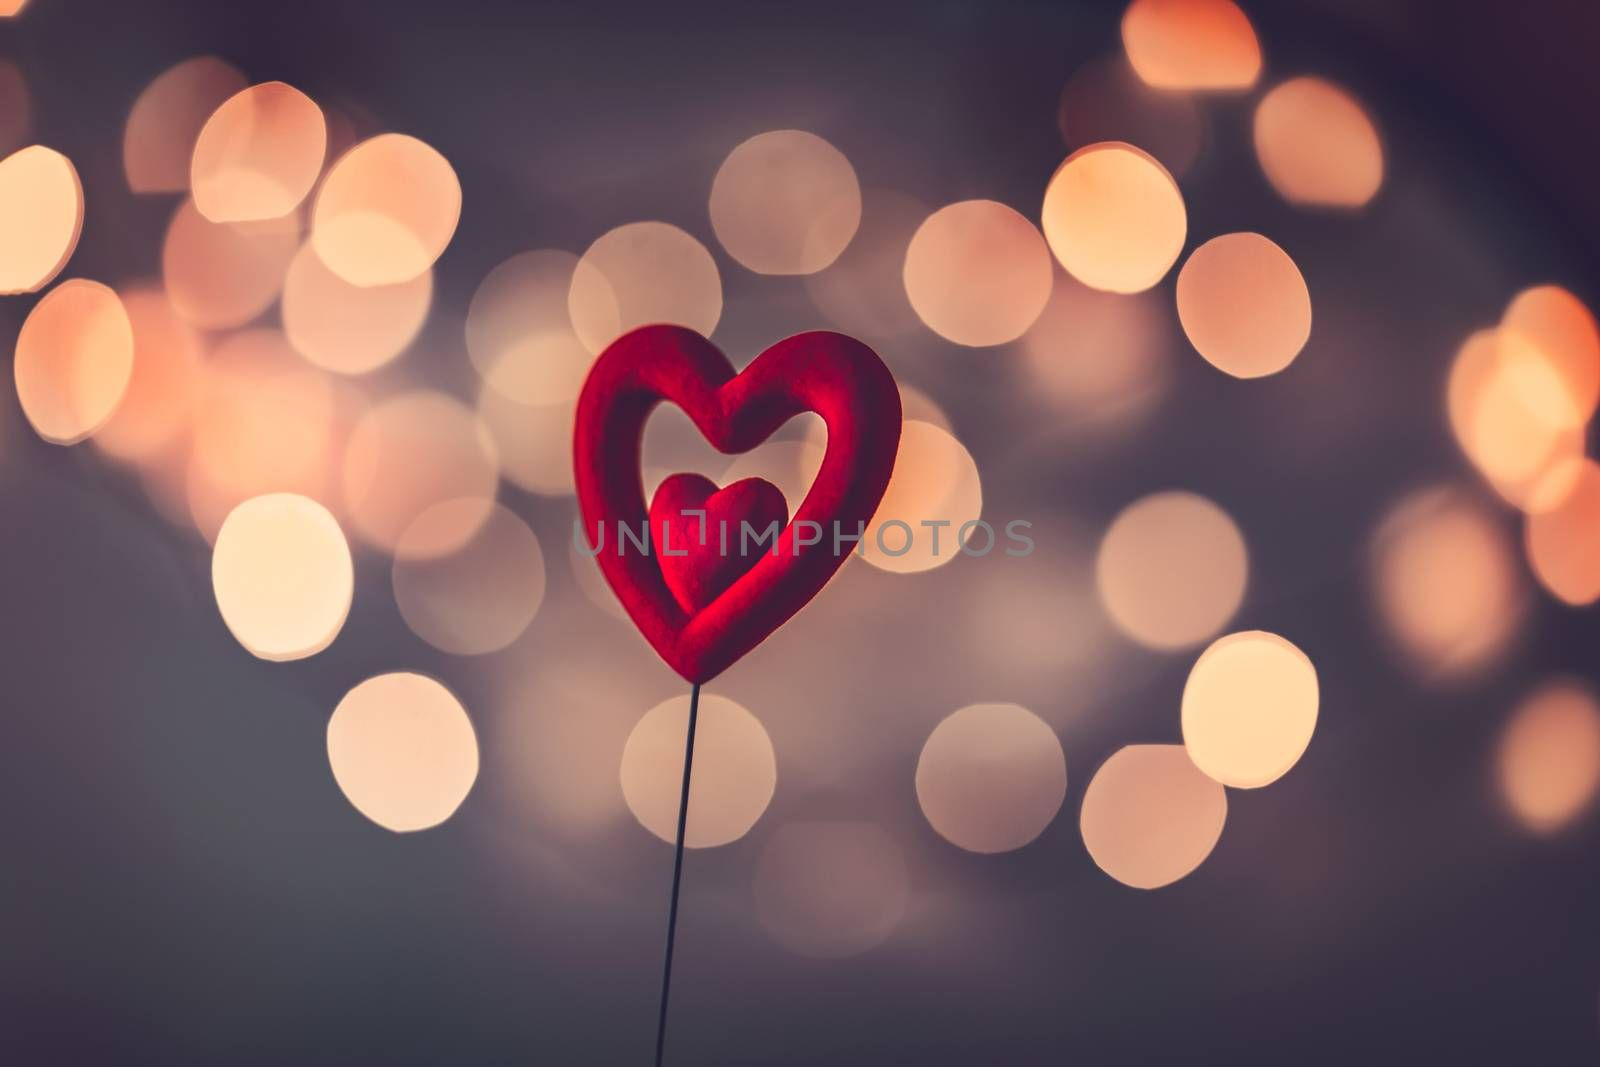 Beautiful red heart over blurry vintage bokeh background, romantic greeting card for Valentine's day, love concept